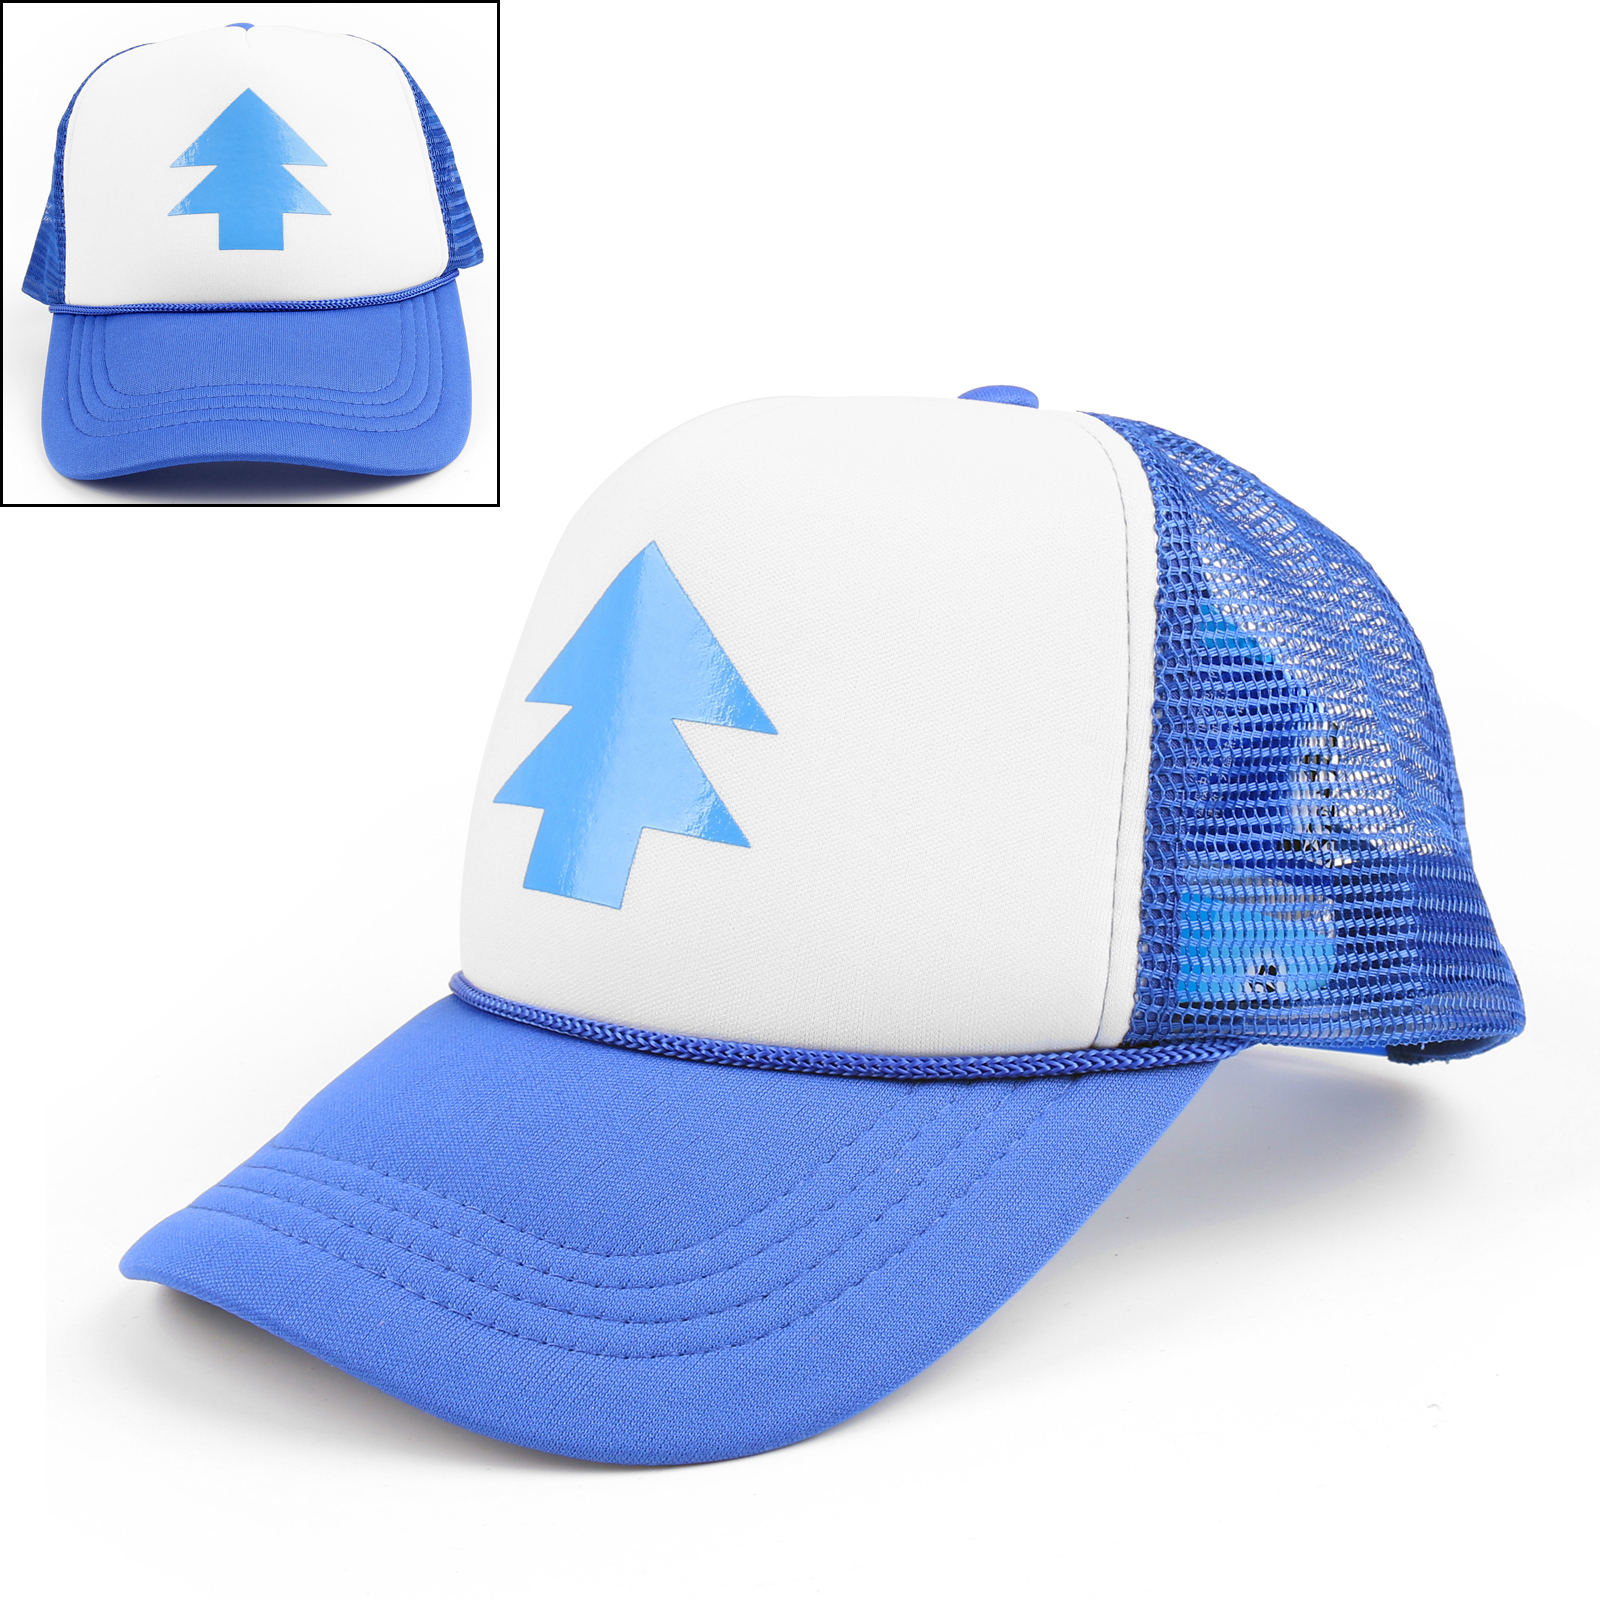 Details about Dipper Hat Bill Blue Pine Tree Cap Gravity Falls Cartoon  Curved Cap Trucker Hat 3efea6aec30